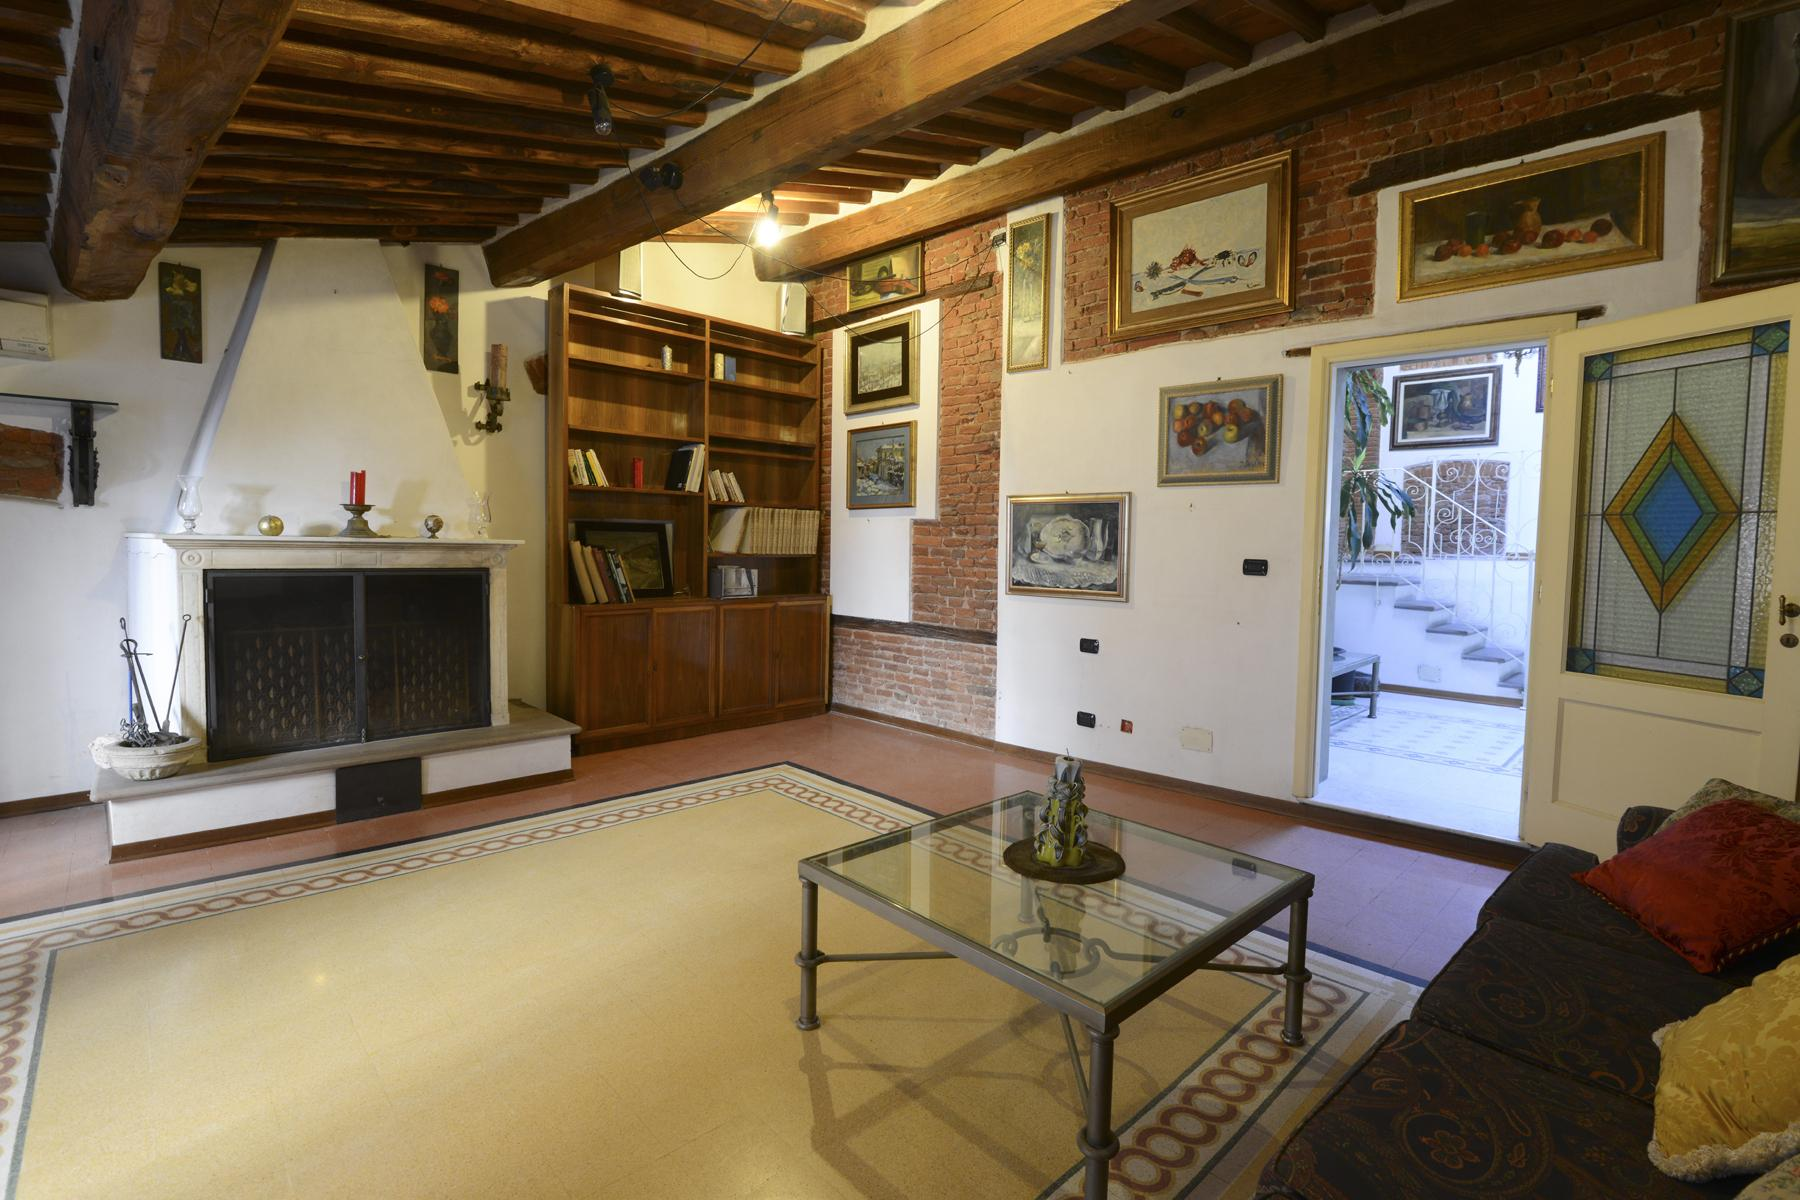 Refined apartment in the center of Lucca - 7